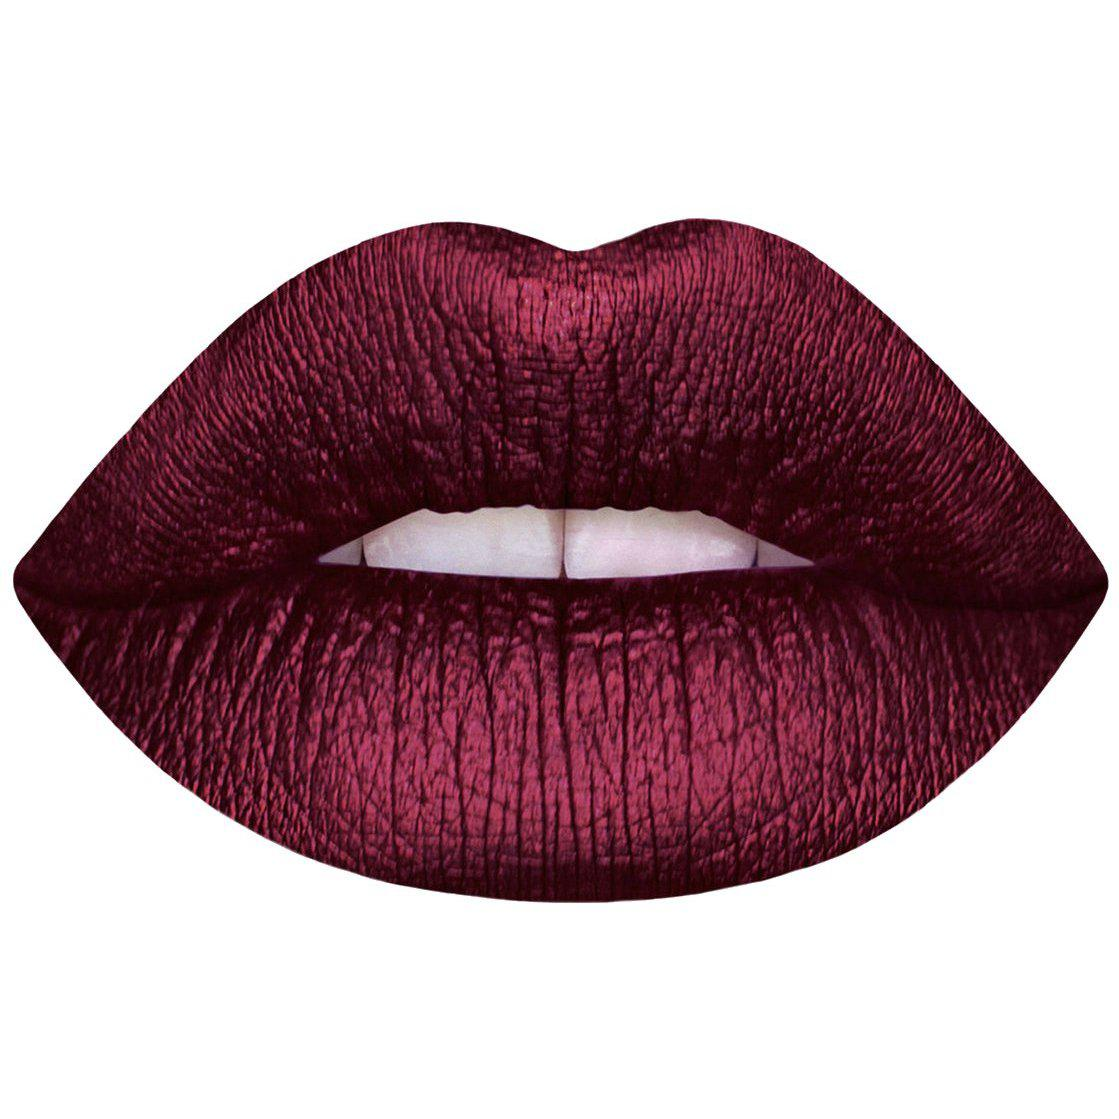 --Raisin Hell - Velvetine Liquid Matte Lipstick Lime Crime - Let it Be Beauty FREE Shipping on all orders--